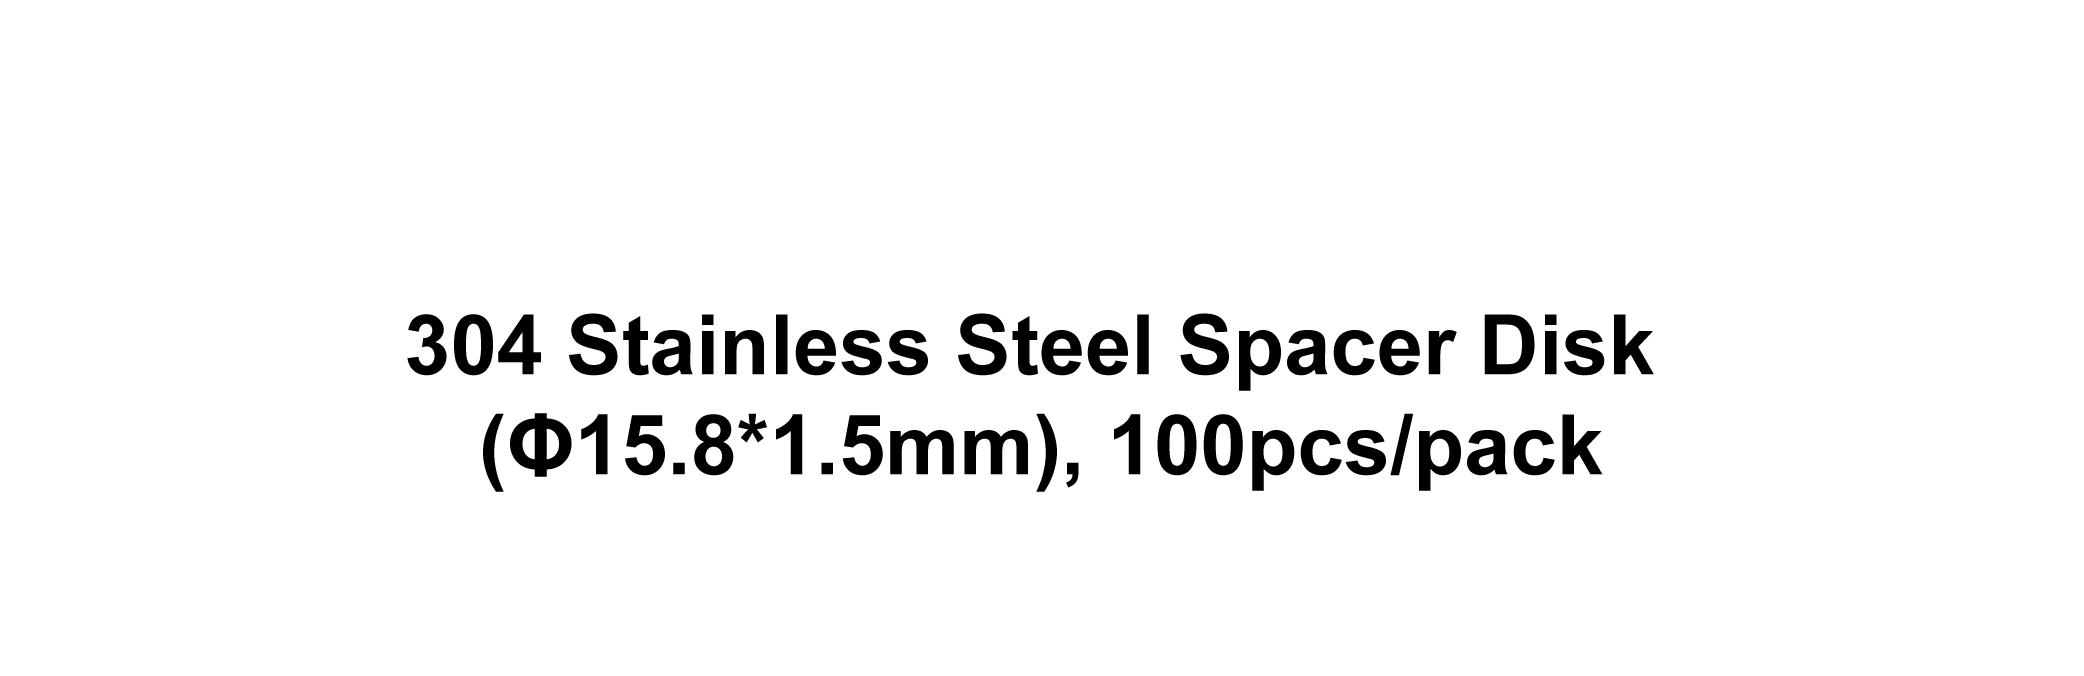 304 Stainless Steel Spacer Disk (Φ15.8*1.5mm), 100pcs/pack